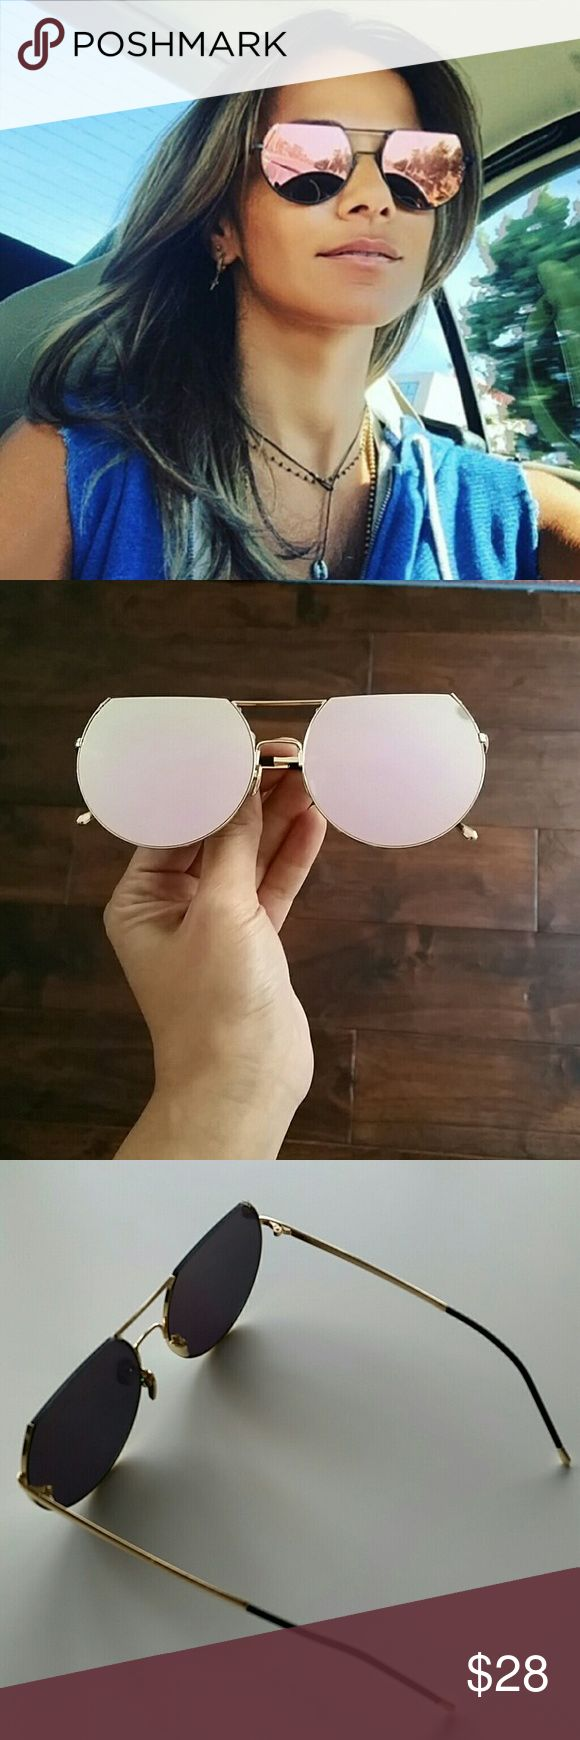 Rose Gold Mirrored Flat Top Sunglasses Trendy rose gold mirrored sunnies.  Double bridge, flat tops.  Rose gold mirrored lense with gold frame. New. ***Same sunglasses in different colors available as separate listings!*** @alexiscb  Accessories Sunglasses